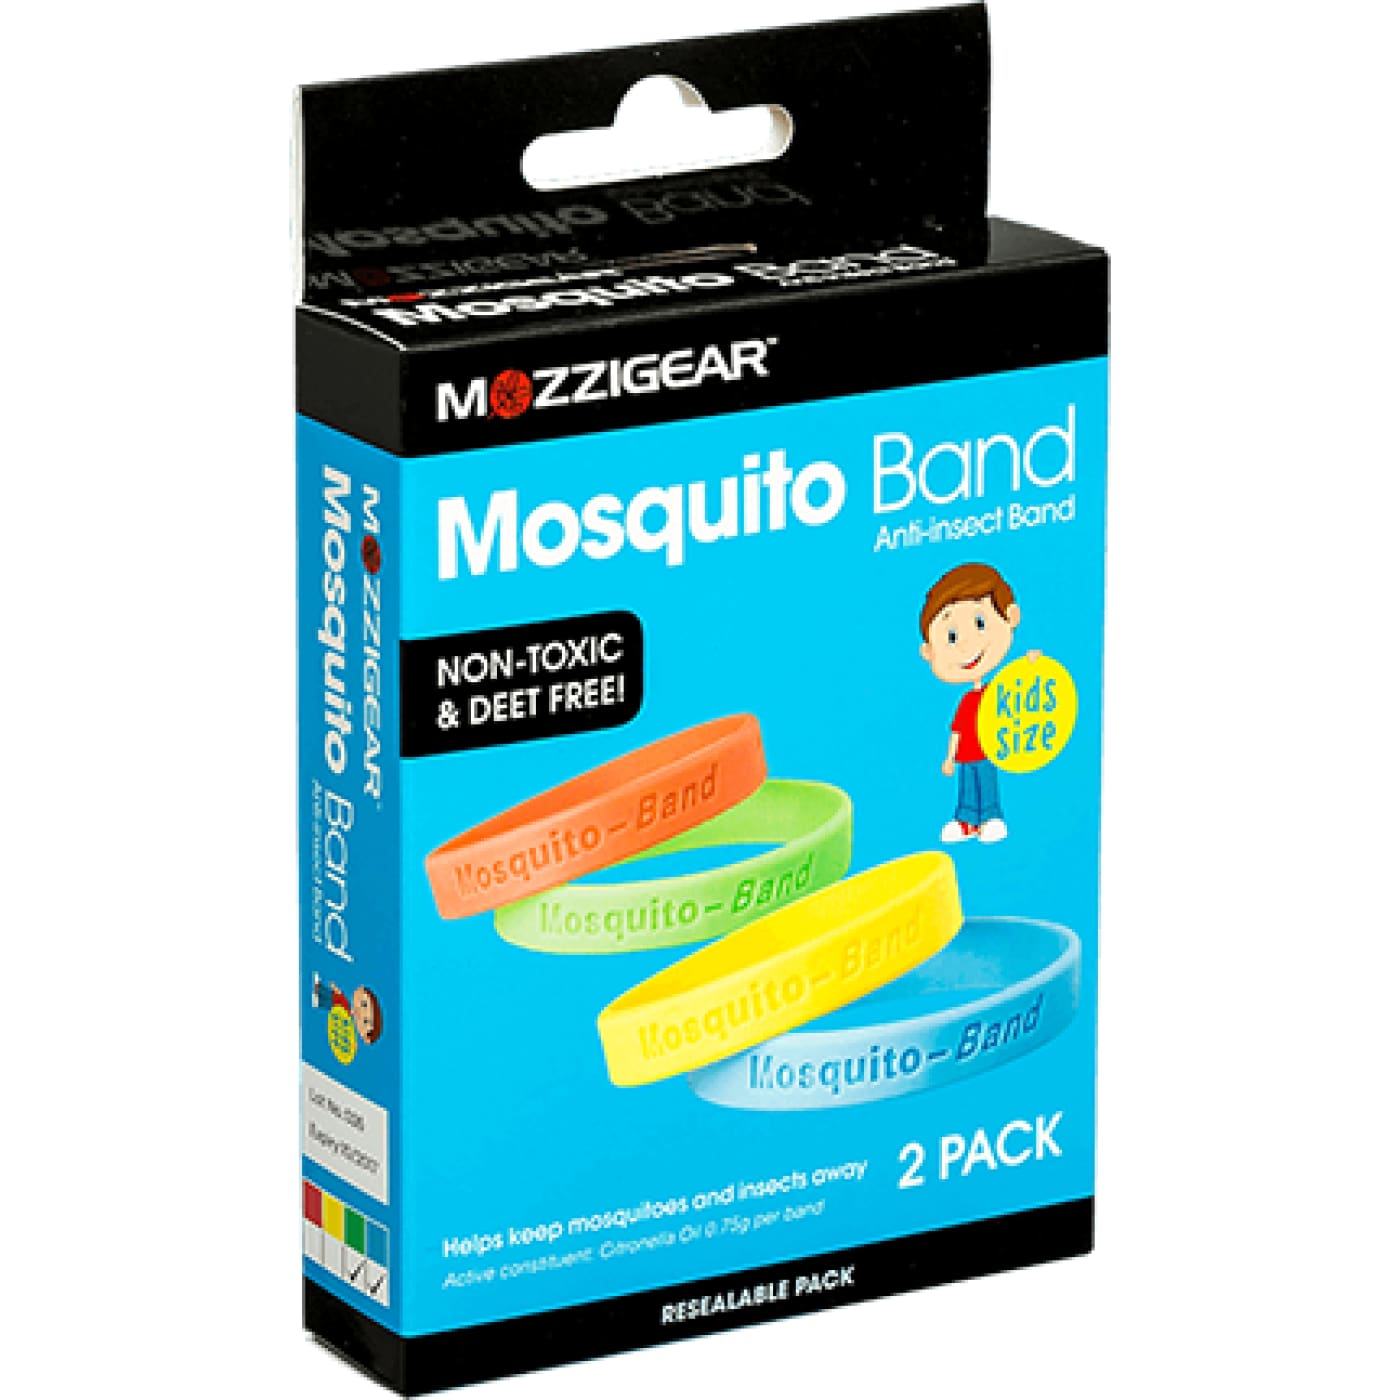 Mozzi Gear Childrens Mosquito Bands 2PK - ON THE GO - INSECT REPELLENT